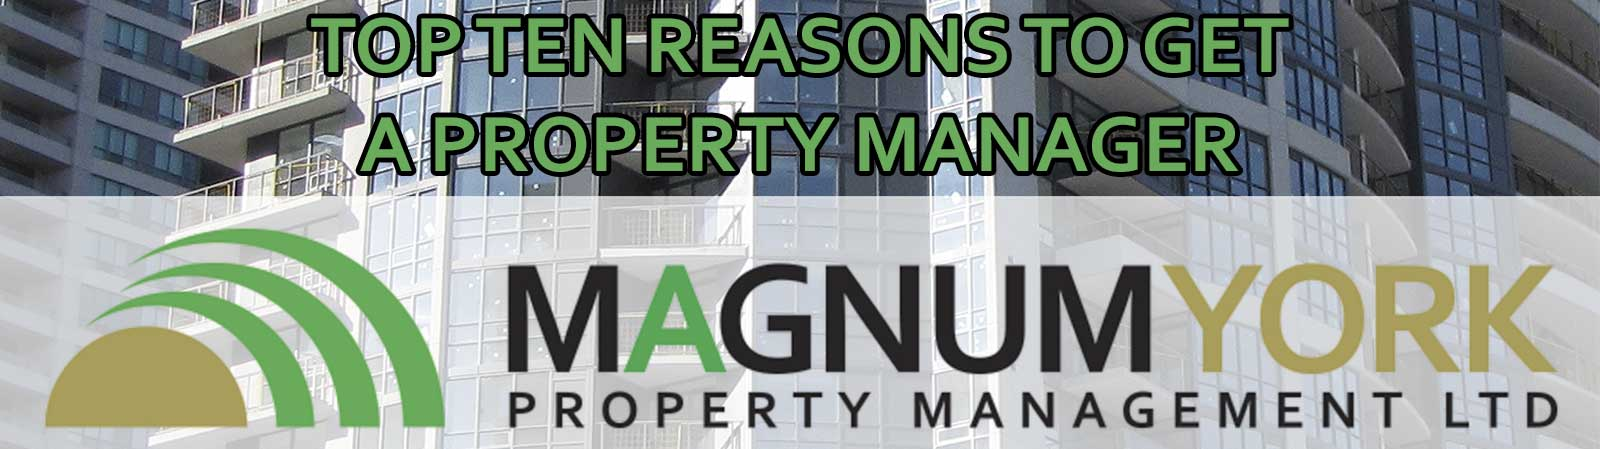 top ten reasons property manager condominium alberta magnum york logo